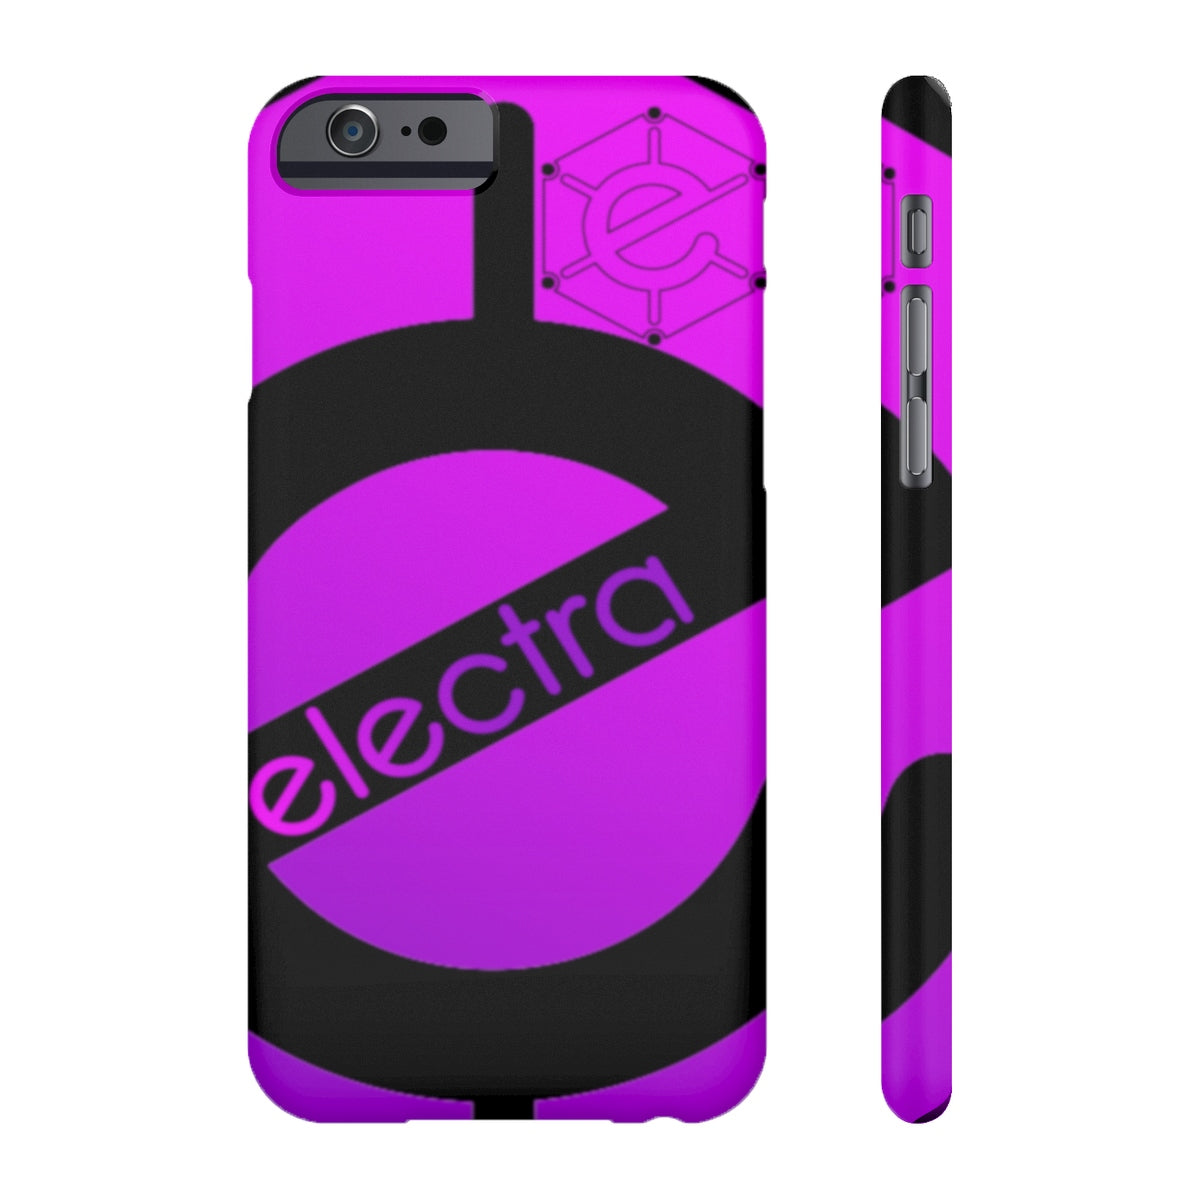 Case Mate Electra Slim Phone Case